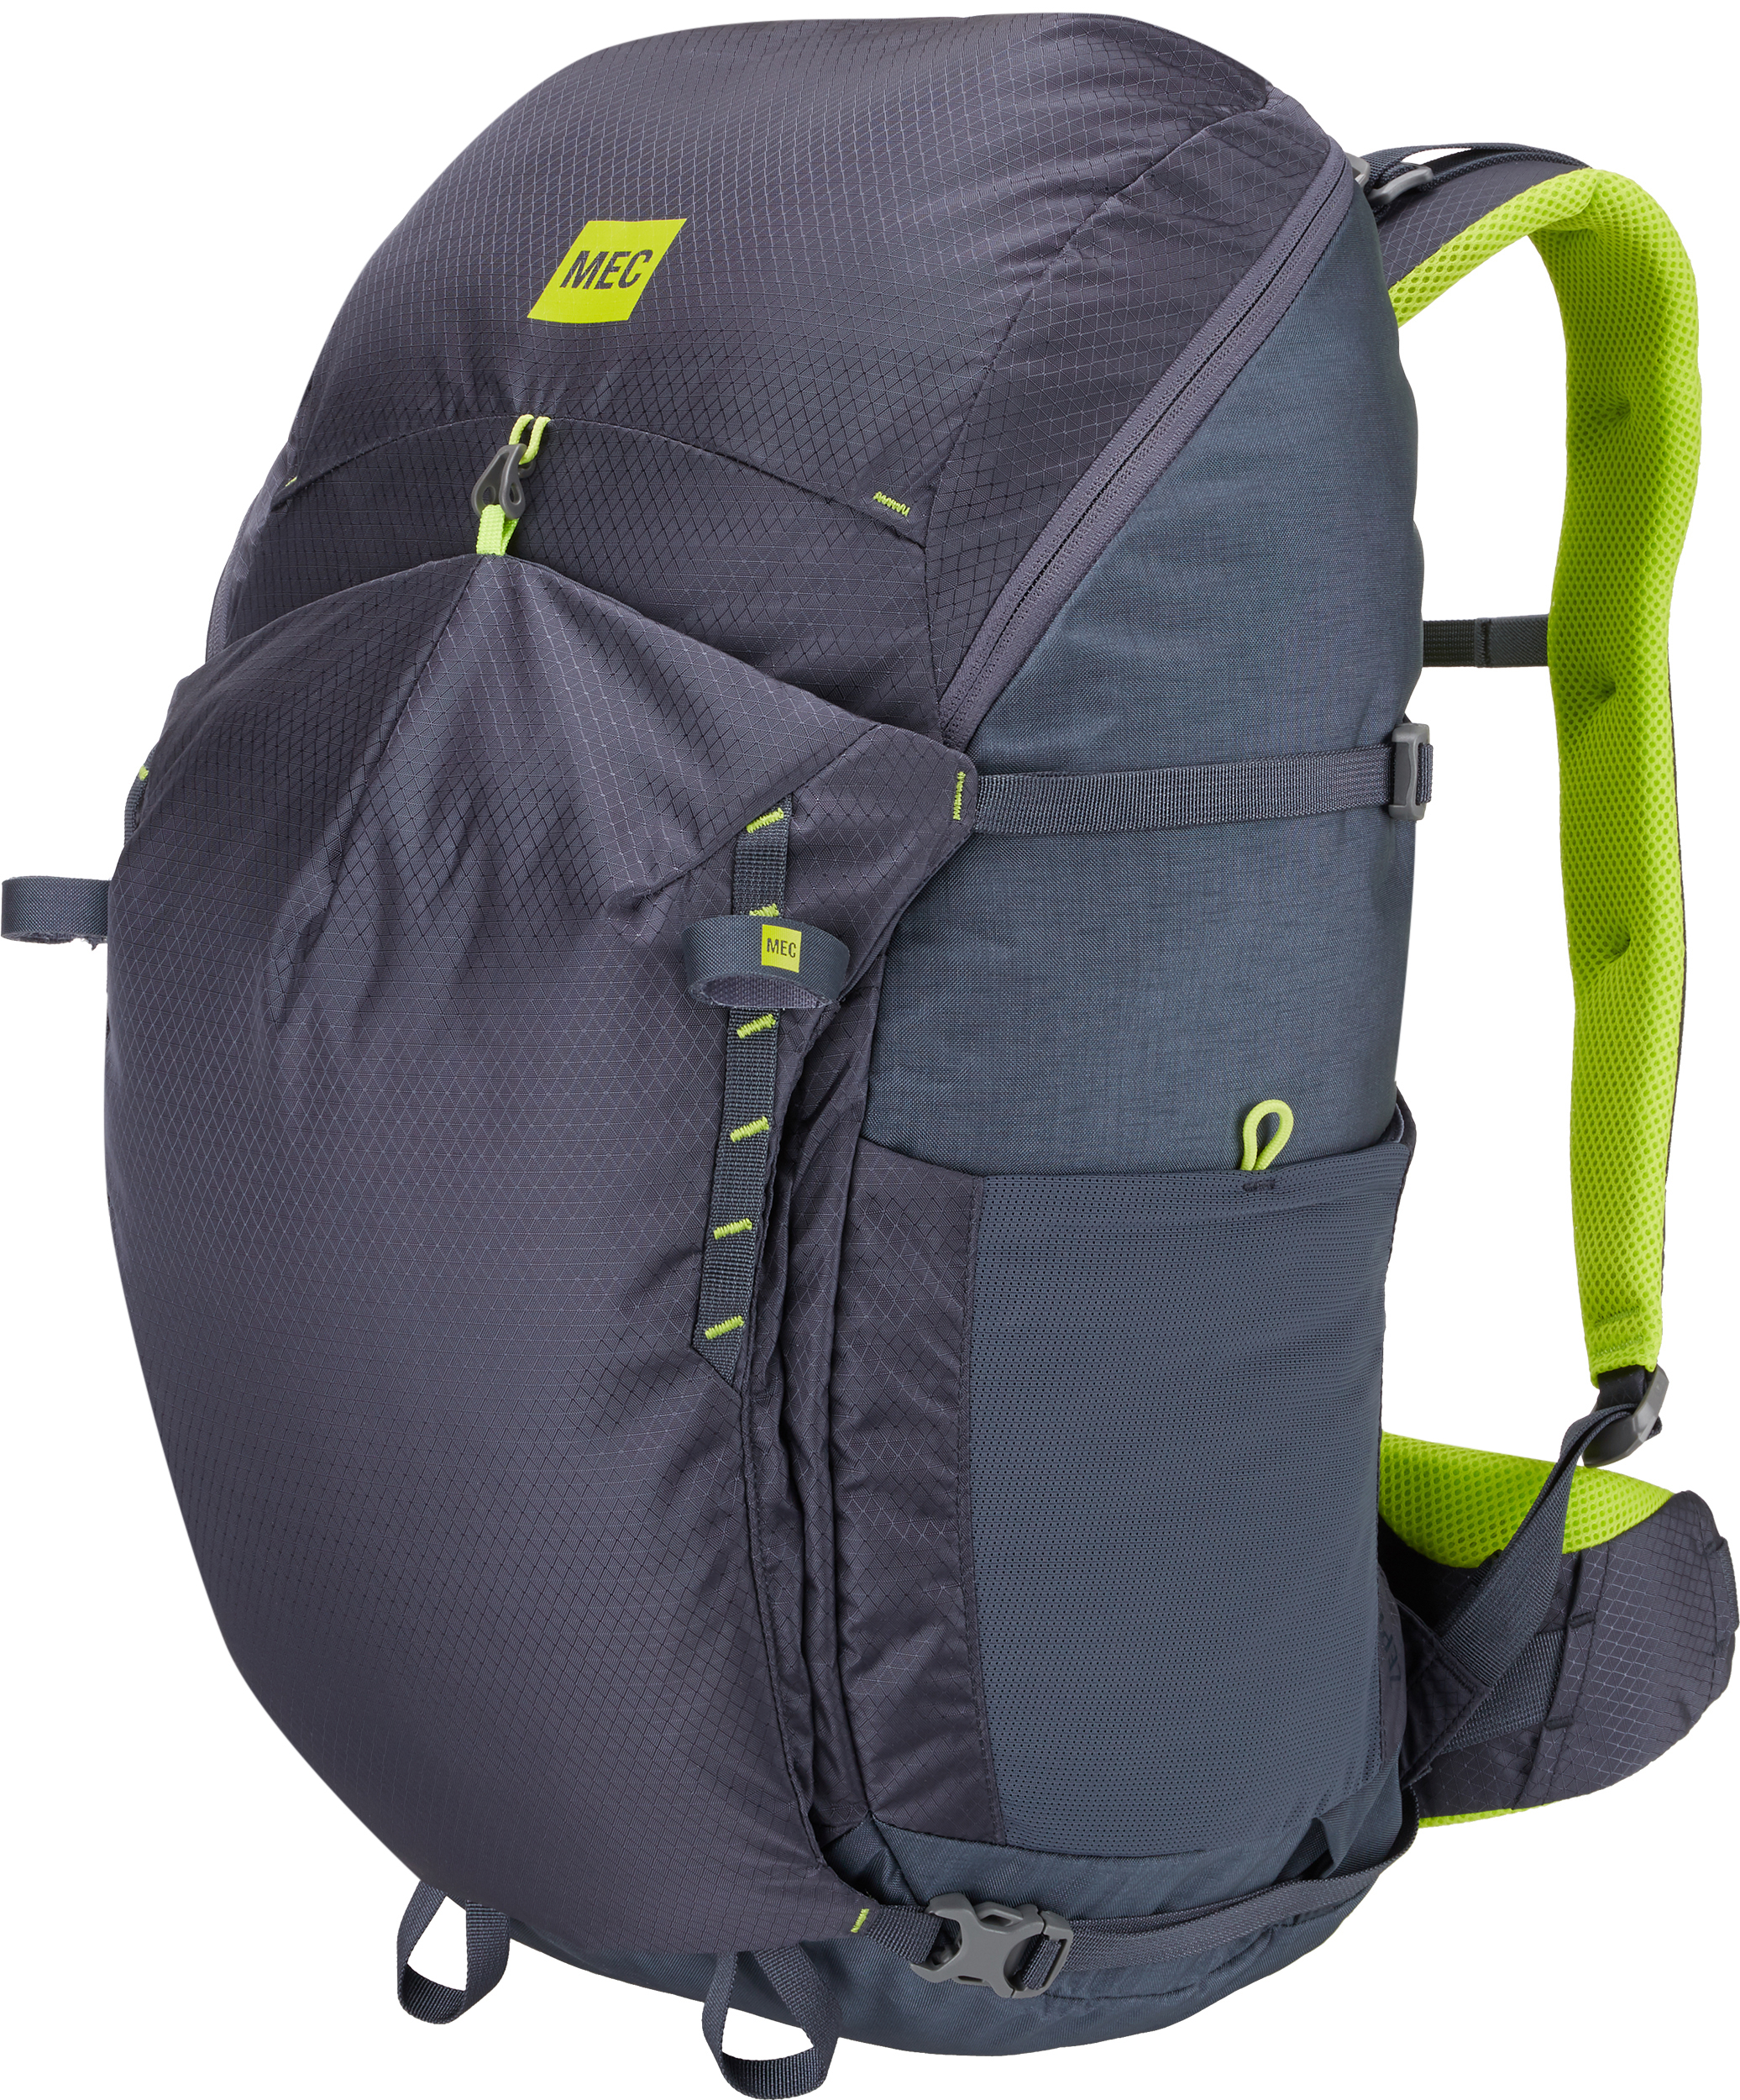 c5ca7514e5a Hiking and camping gear and supplies | MEC